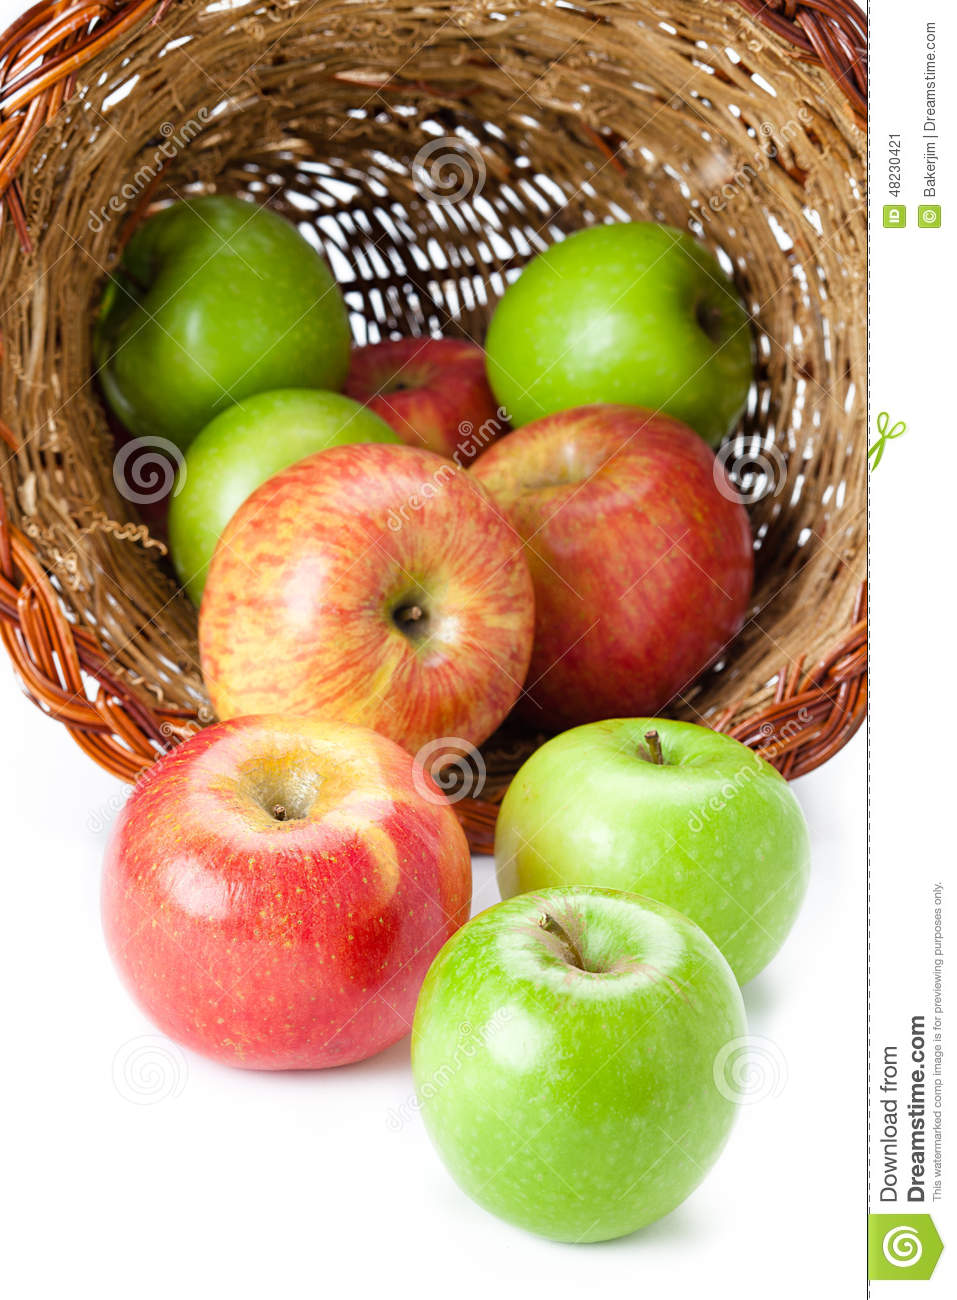 green and red apples in basket. royalty-free stock photo. download red and green apples in basket r